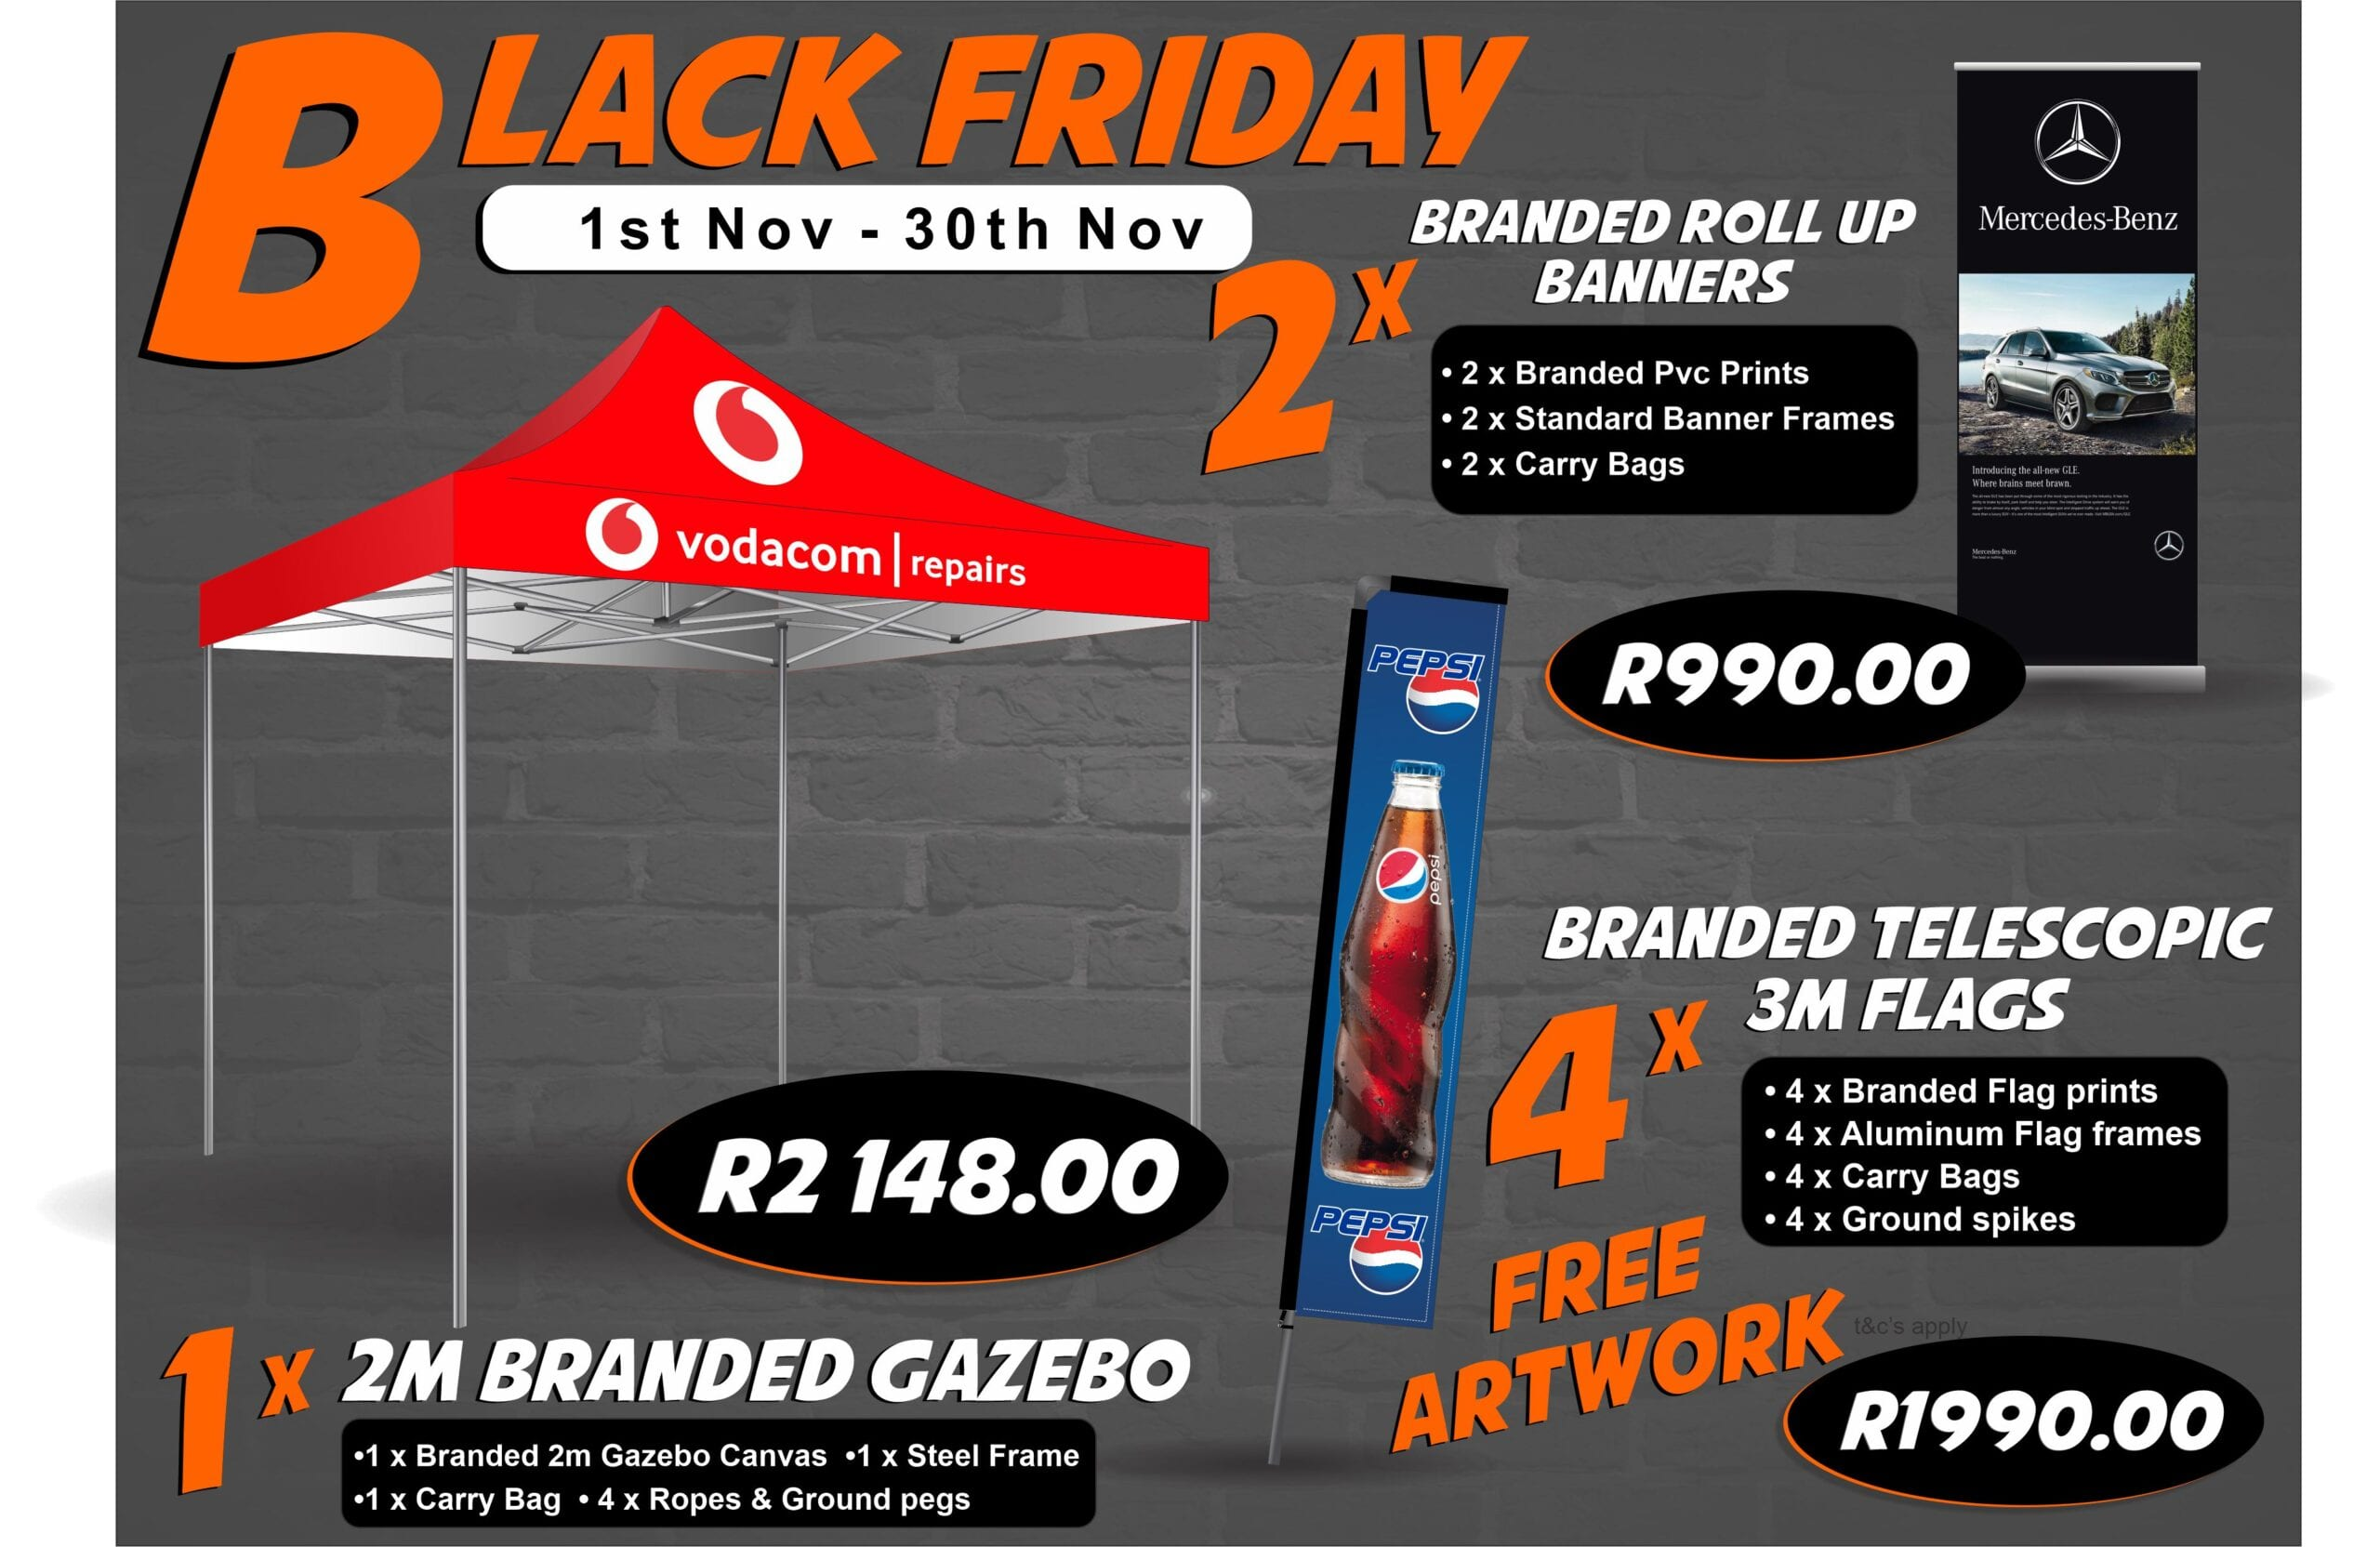 Black Friday Gazebo deals